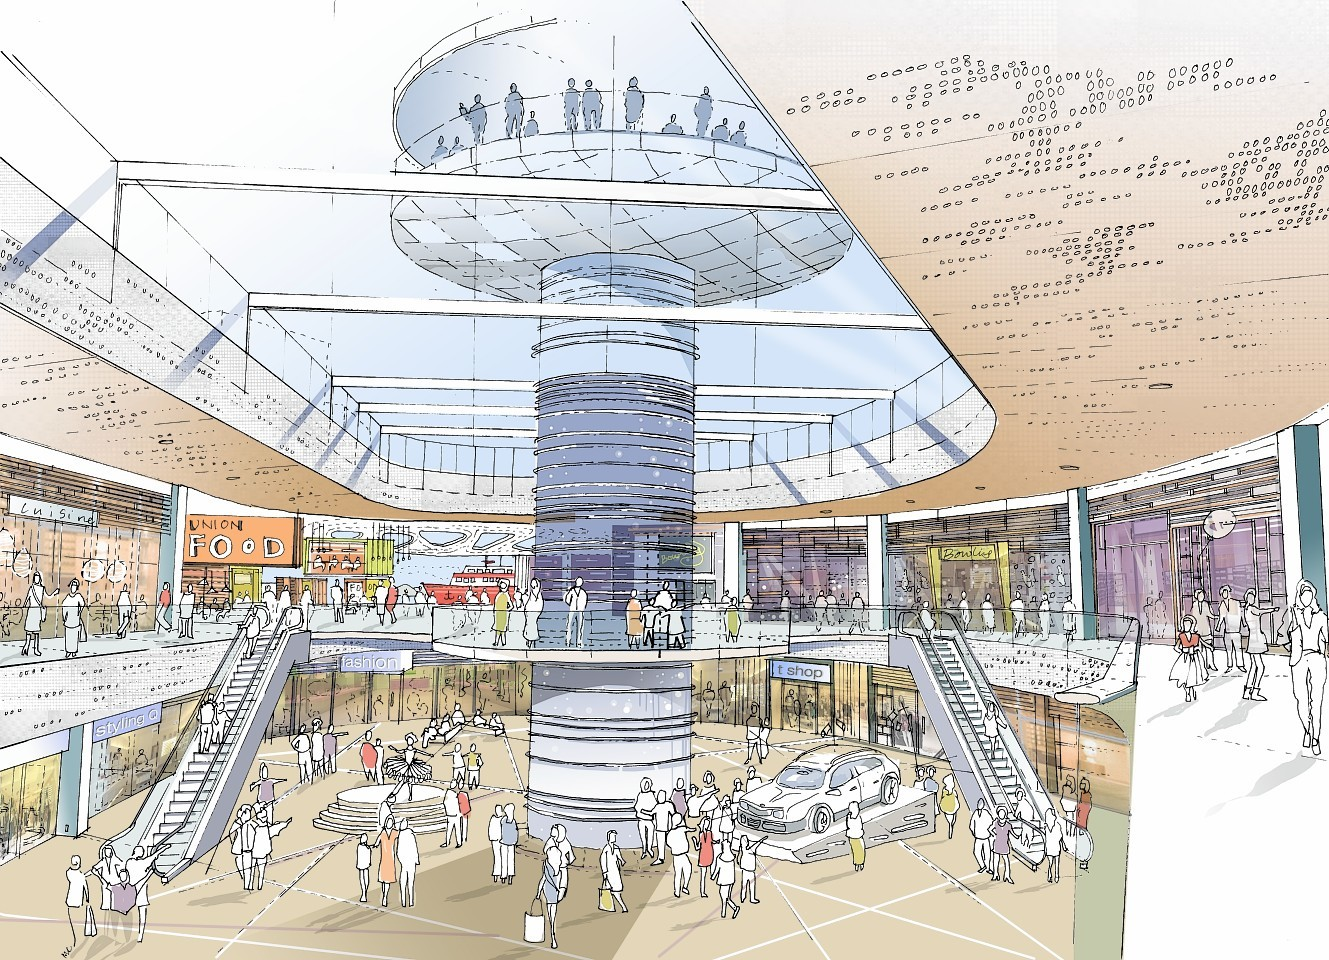 Artist impression of the planned revamp of Aberdeen's Union Square. This image shows a proposed indoor area including an atrium and observation tower